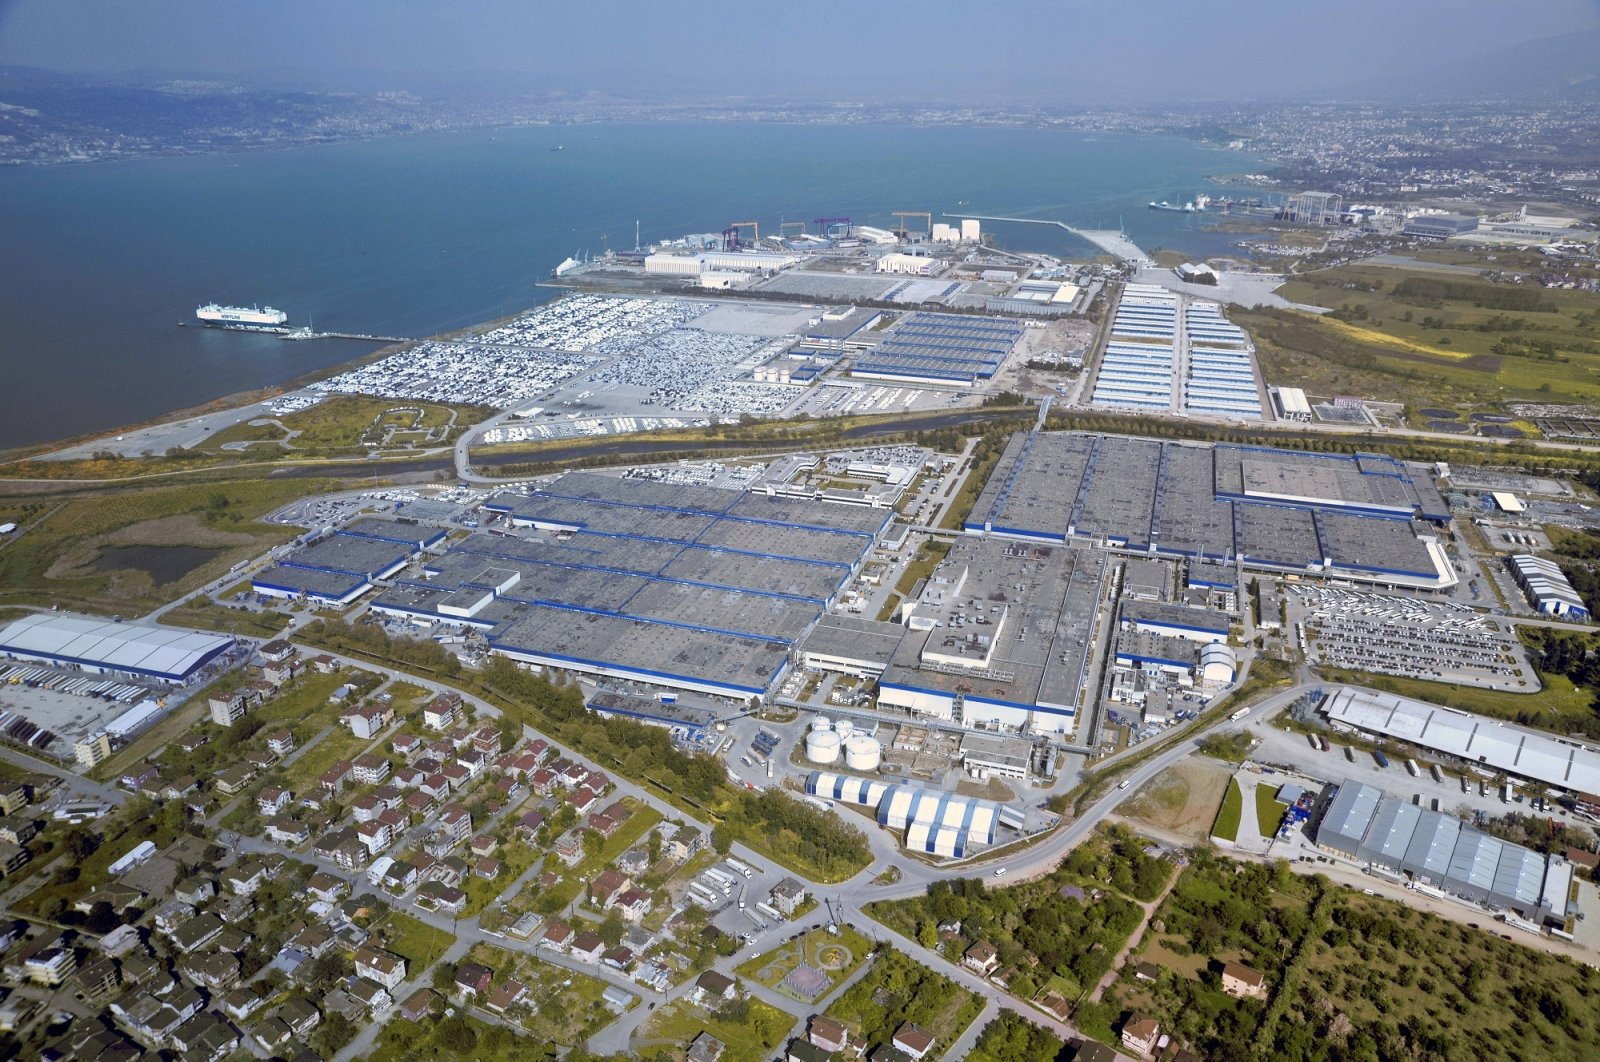 An aerial view of Ford Otosan's factory in Turkey's northwestern province of Kocaeli. (Courtesy of Ford Otosan)